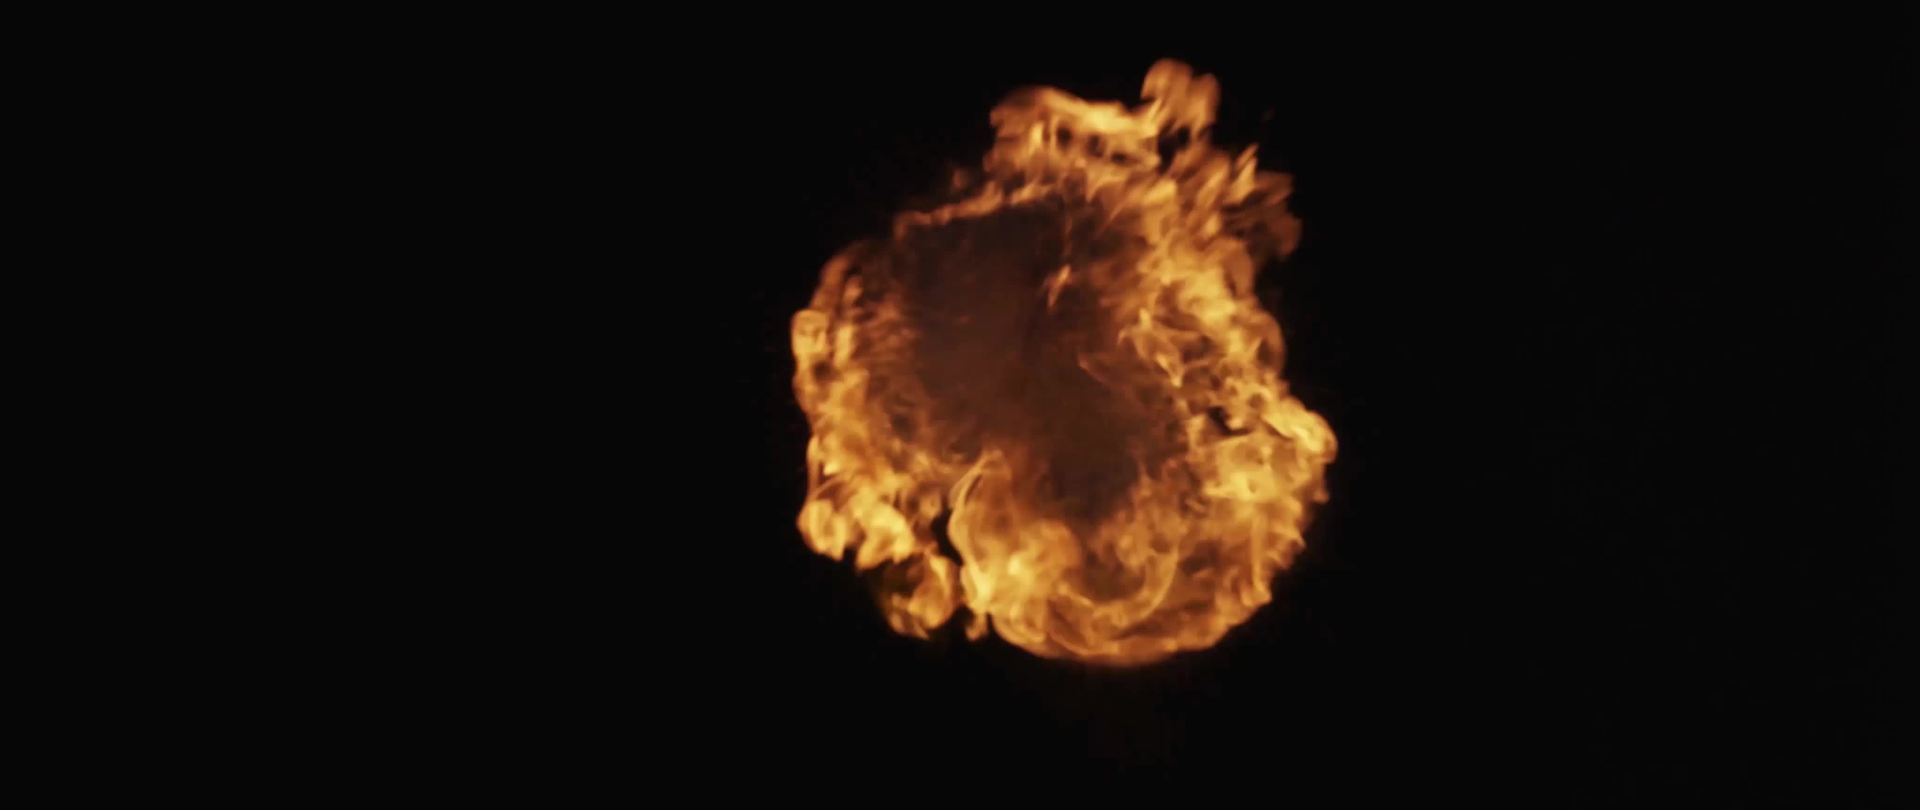 Spectacular fireball burning and floating in darkness in 4K - Free